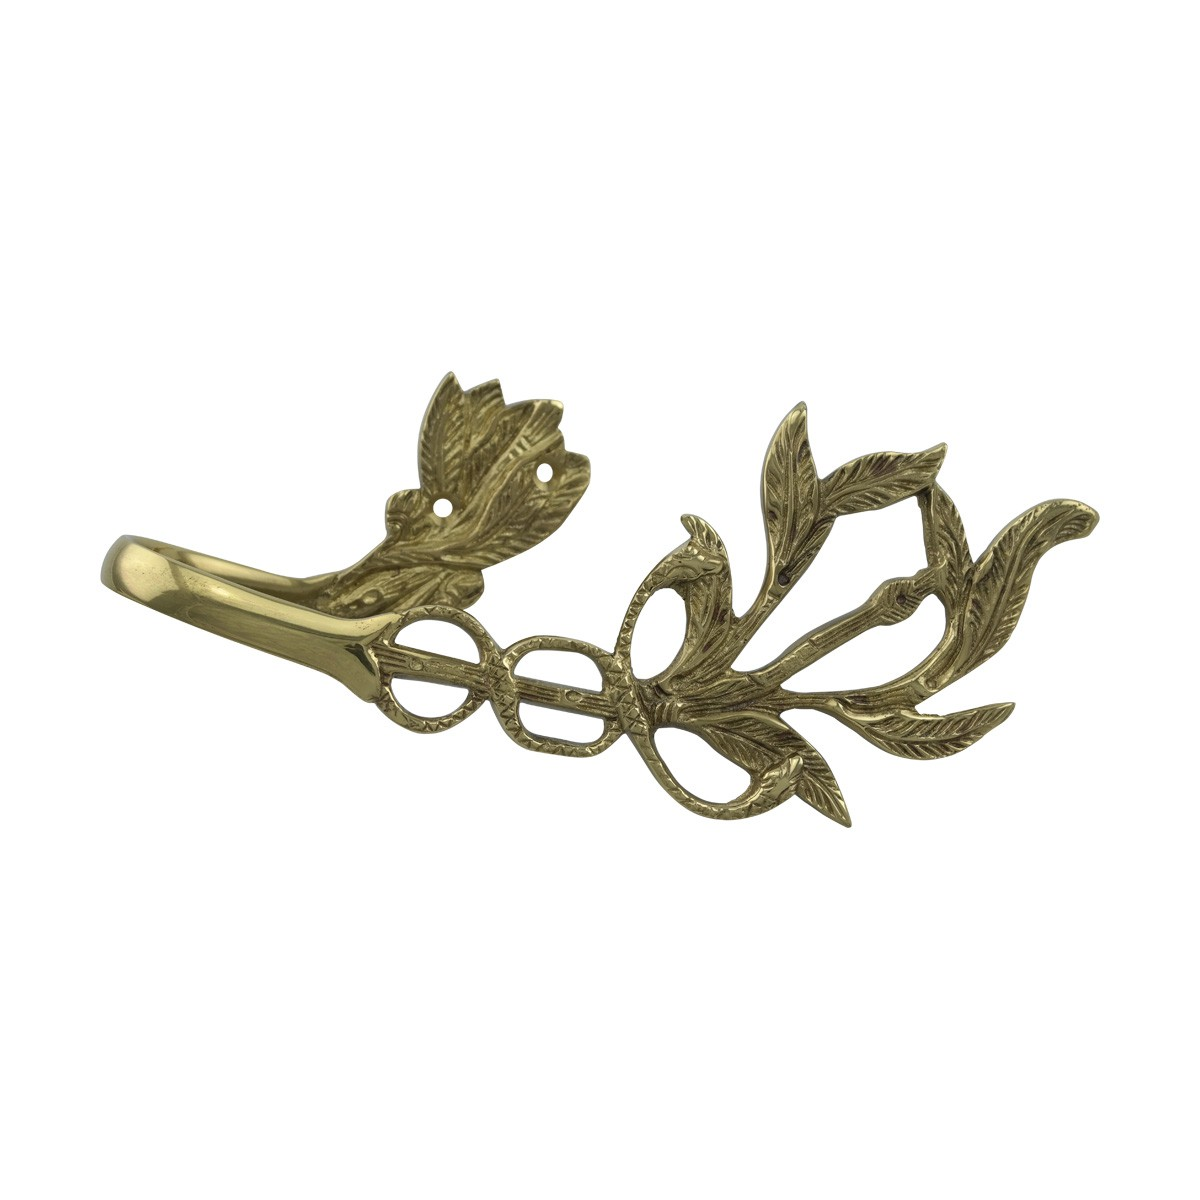 Vintage Pair Vine Curtain Tie Back Holder Bright Brass Pack of 2 Tie Back Curtain Back Tie Backs